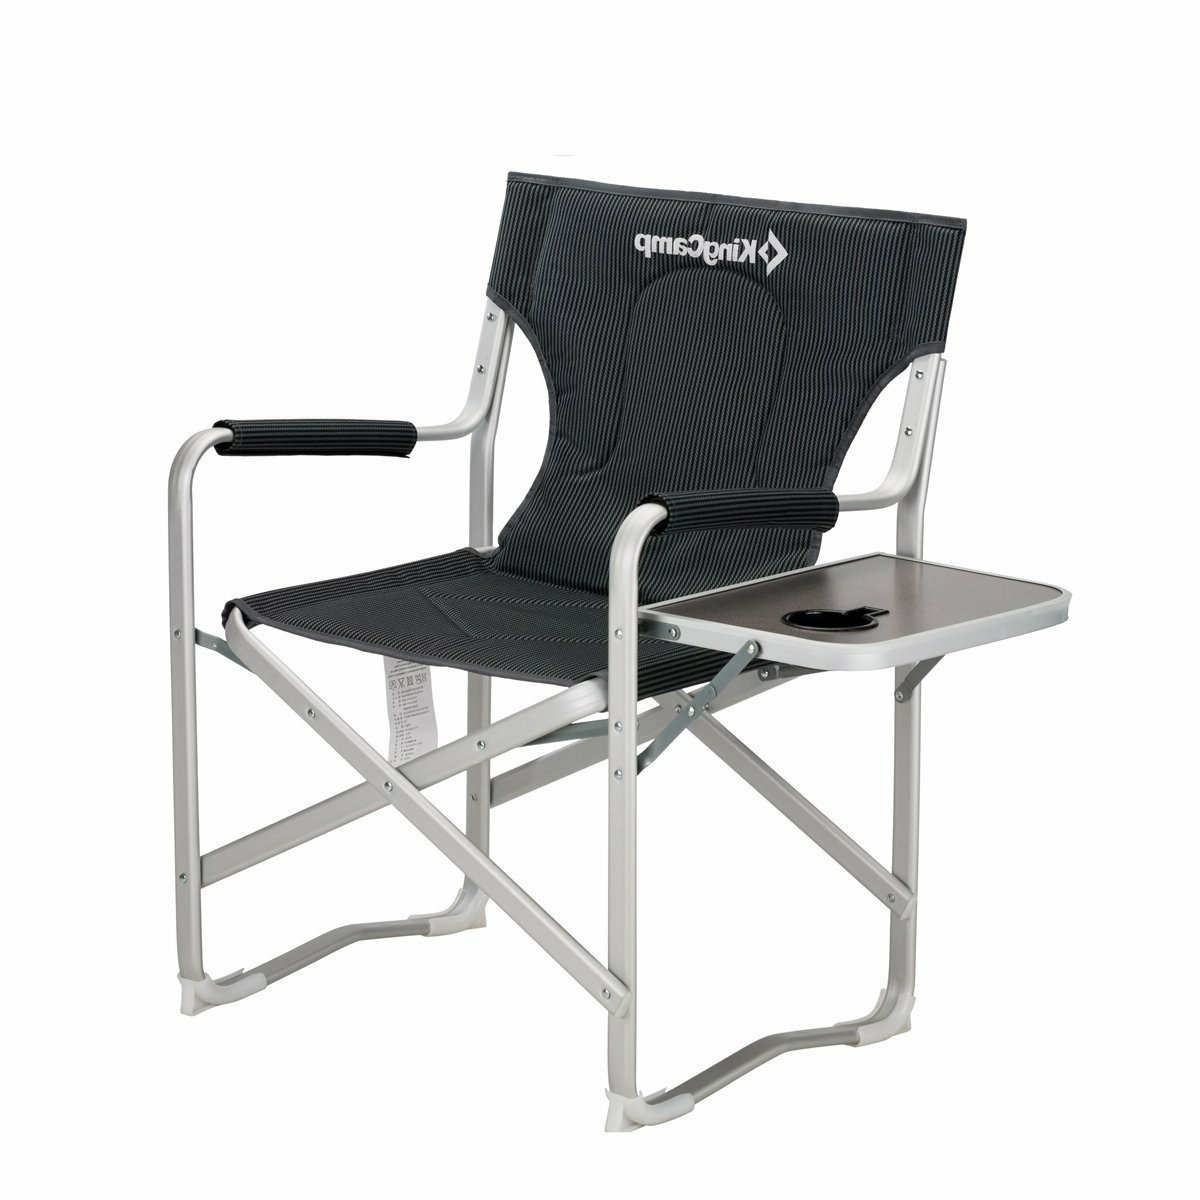 Portable Extendable Folding Reclining Chairs Within Trendy Portable Heavy Duty Folding Reclining Camping Chair With Armrest Side Table And Cup Holder (View 13 of 25)